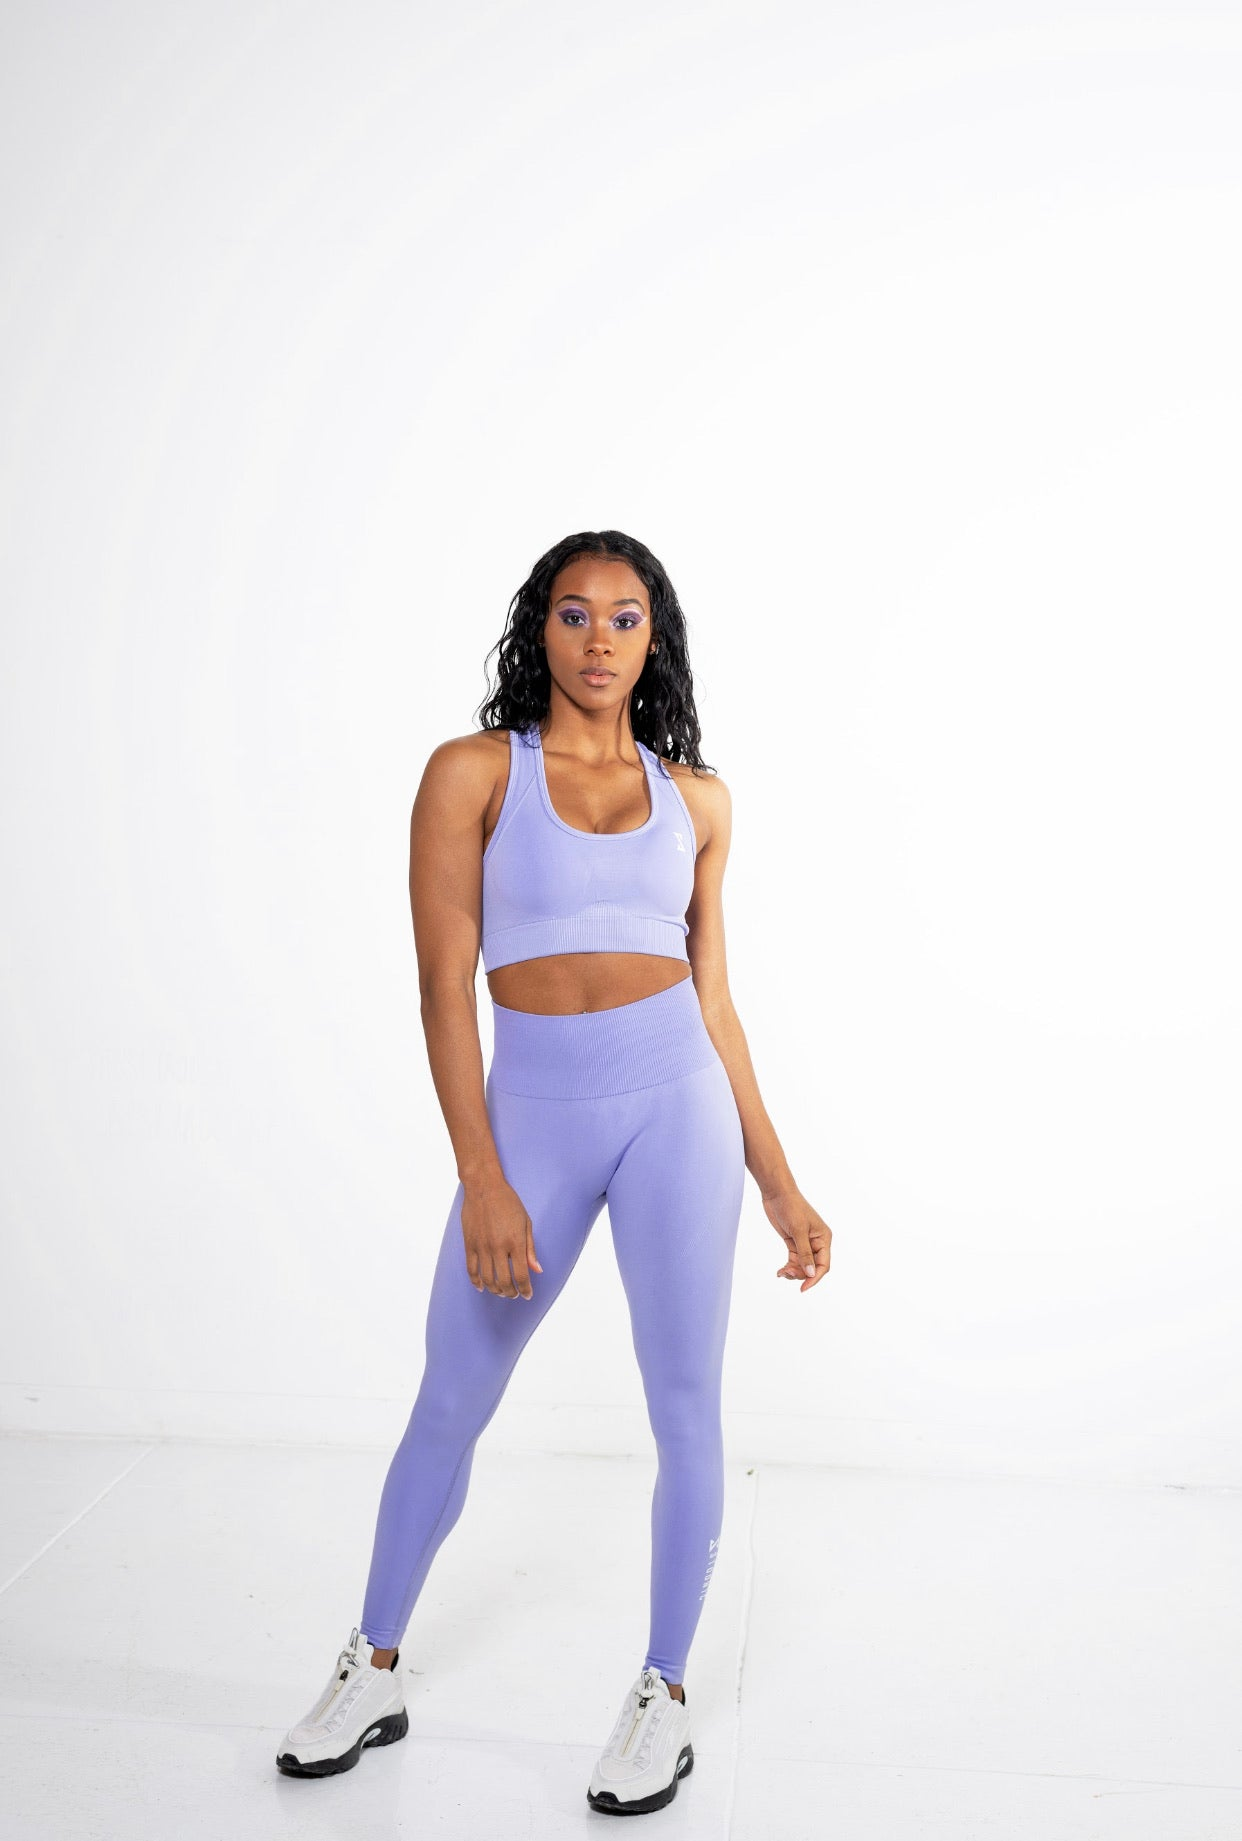 Stoonic Sculpt Leggings - Lavender